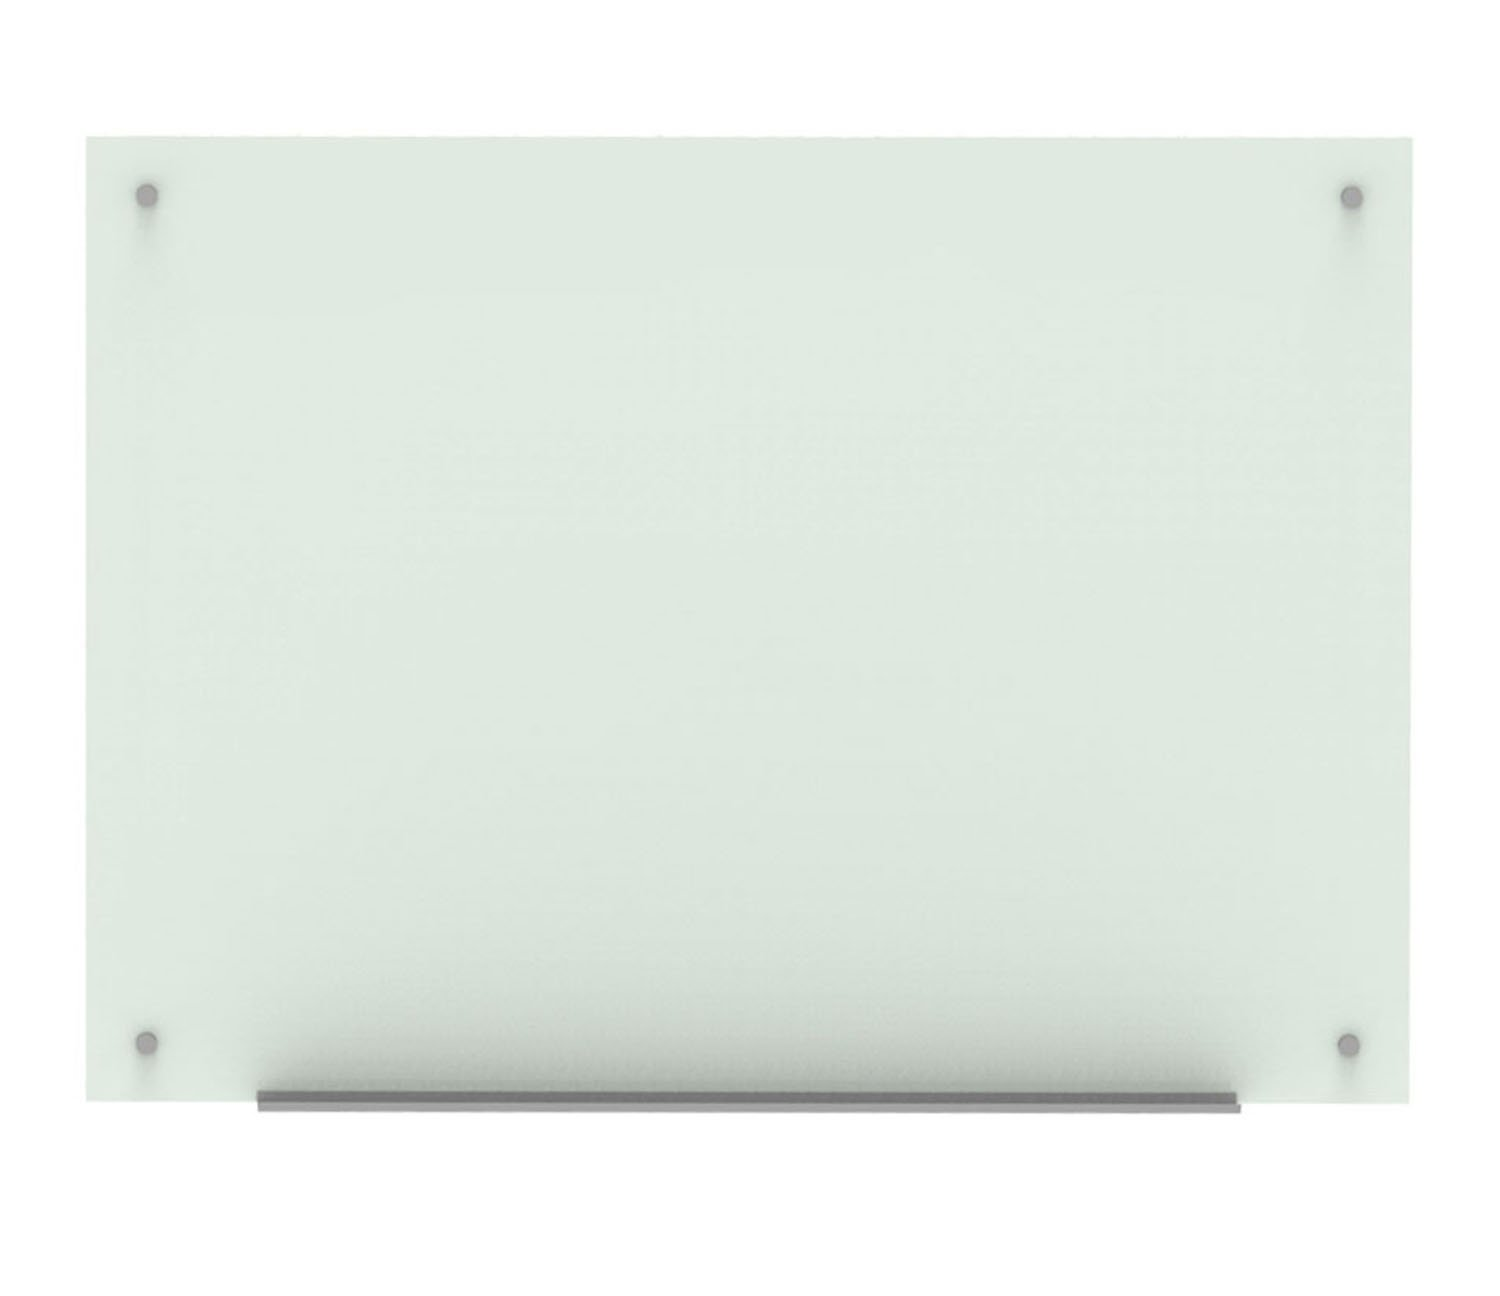 LUXOR WGB4836M Magnetic Wall-Mounted Glass Board 48x36